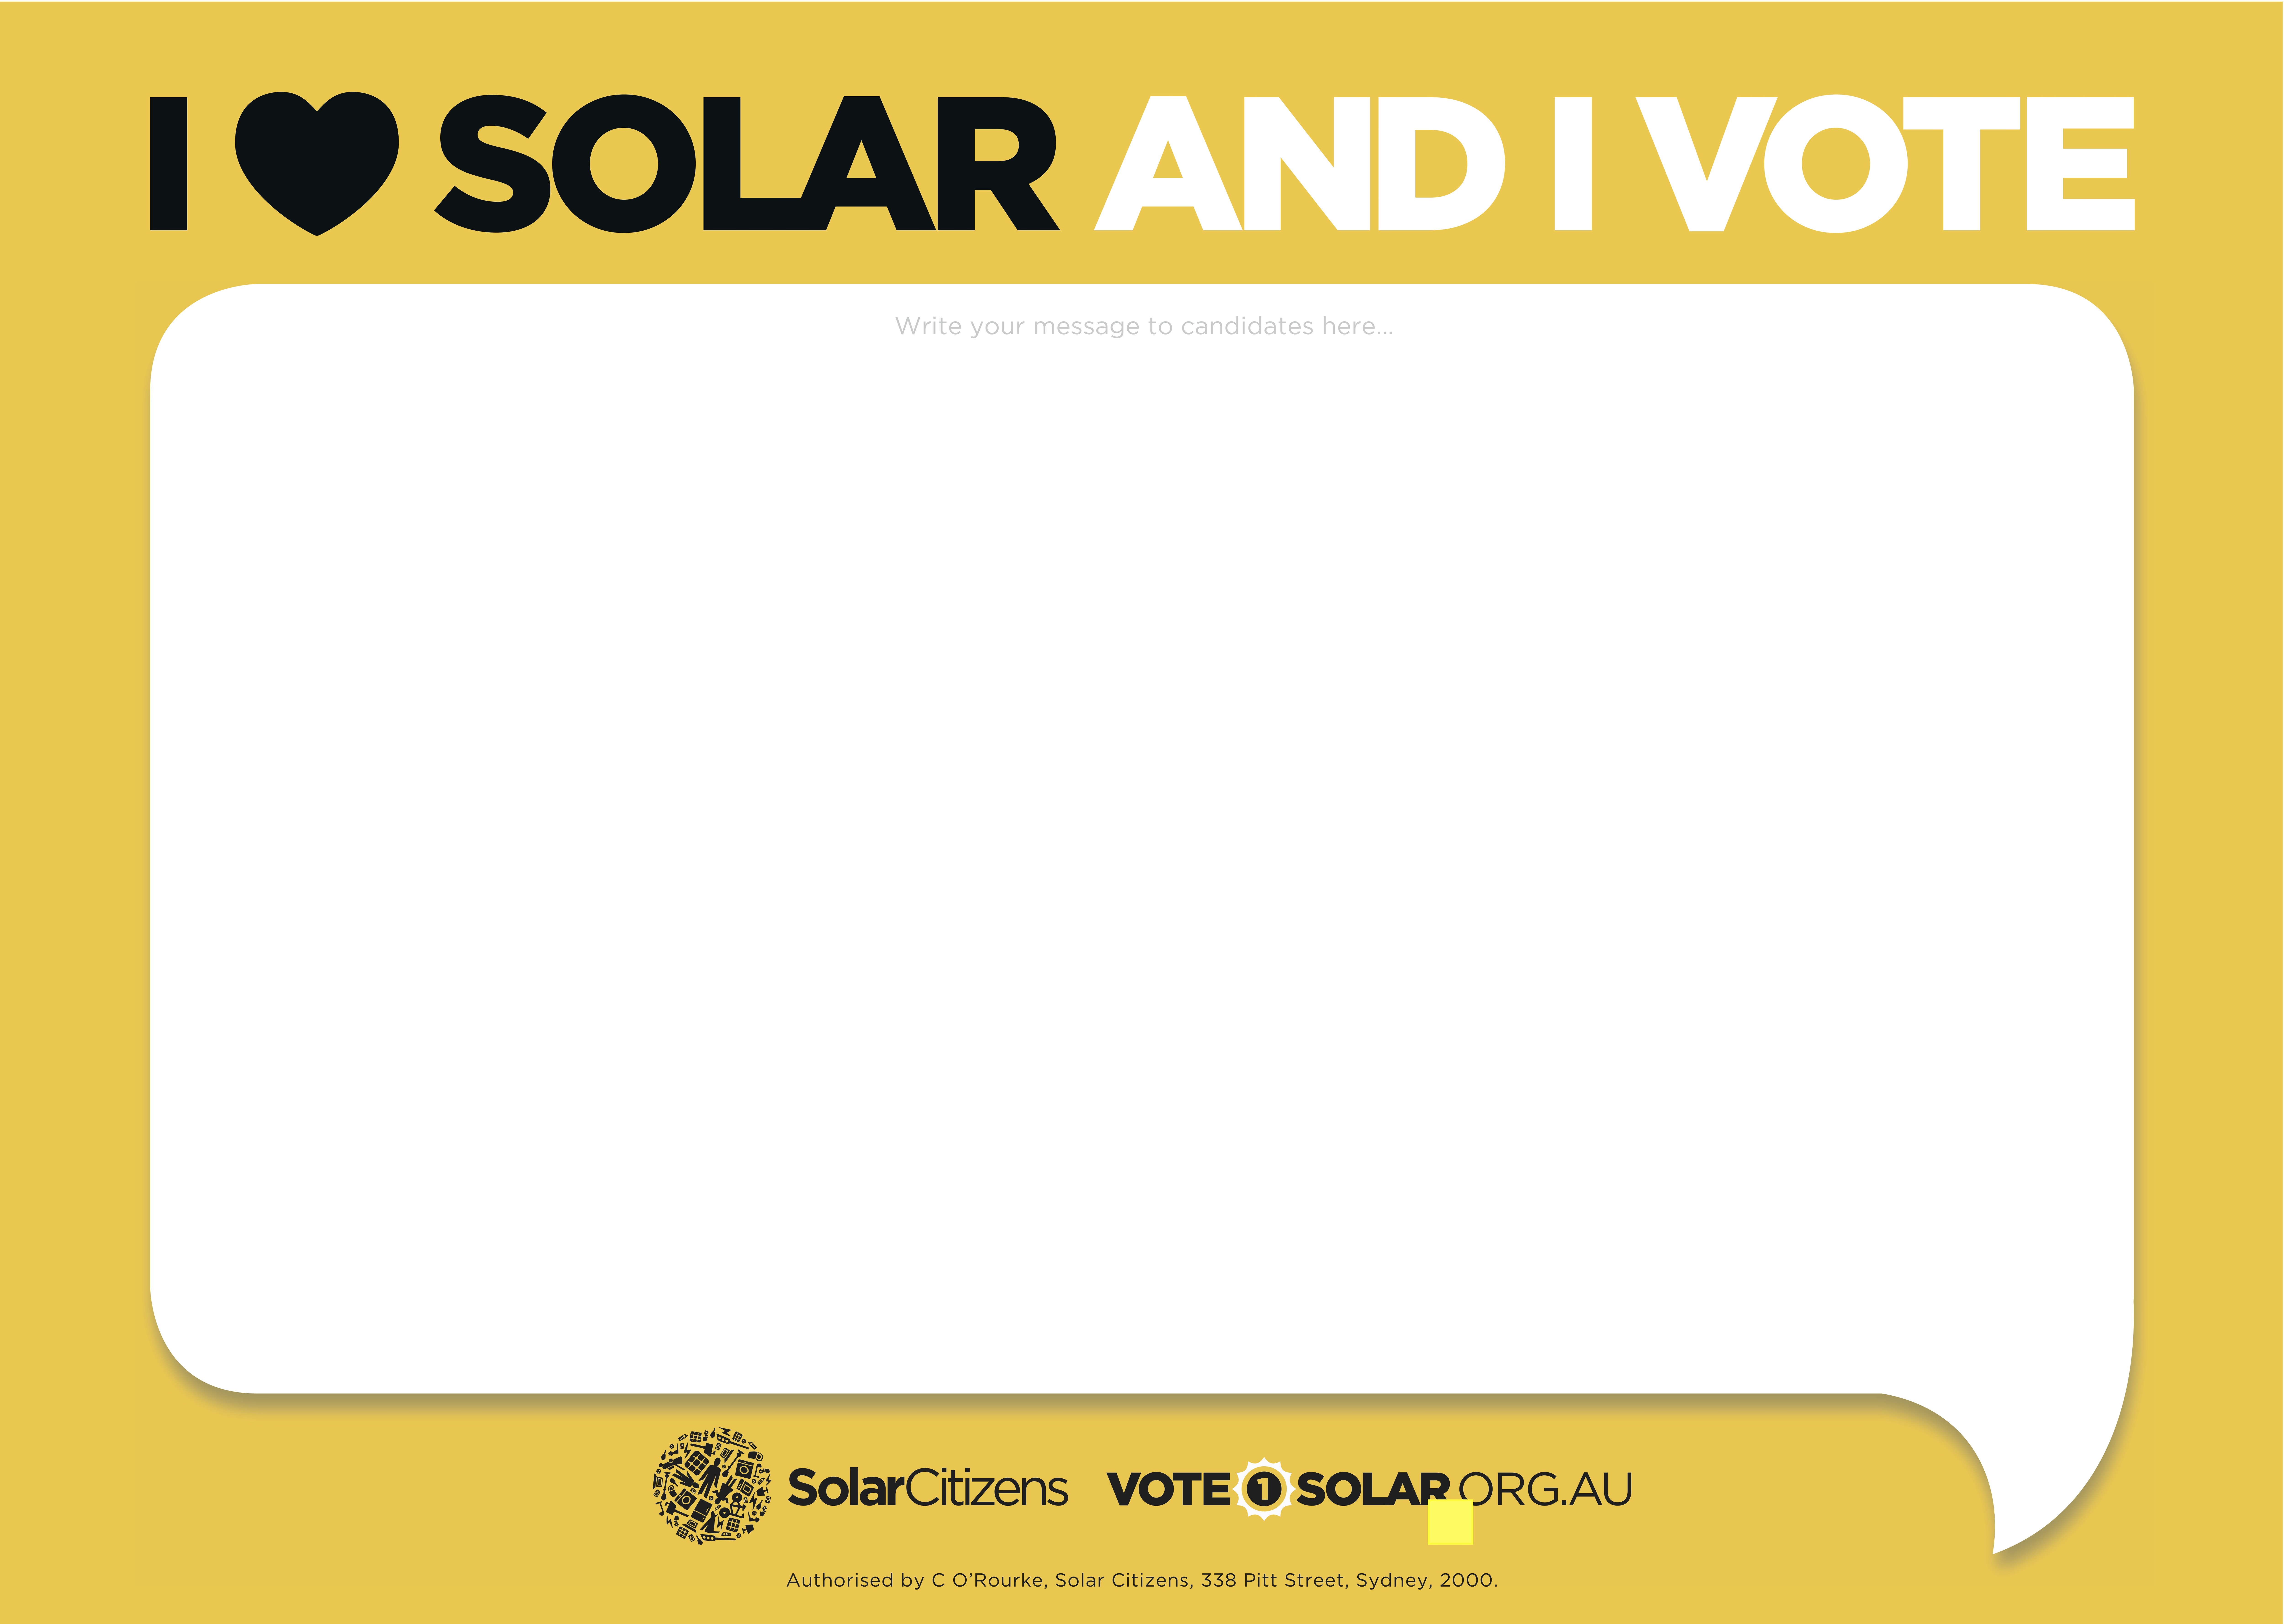 Solar_Citizens_Vote1Solar_A3_Messages_Card_copy.jpg